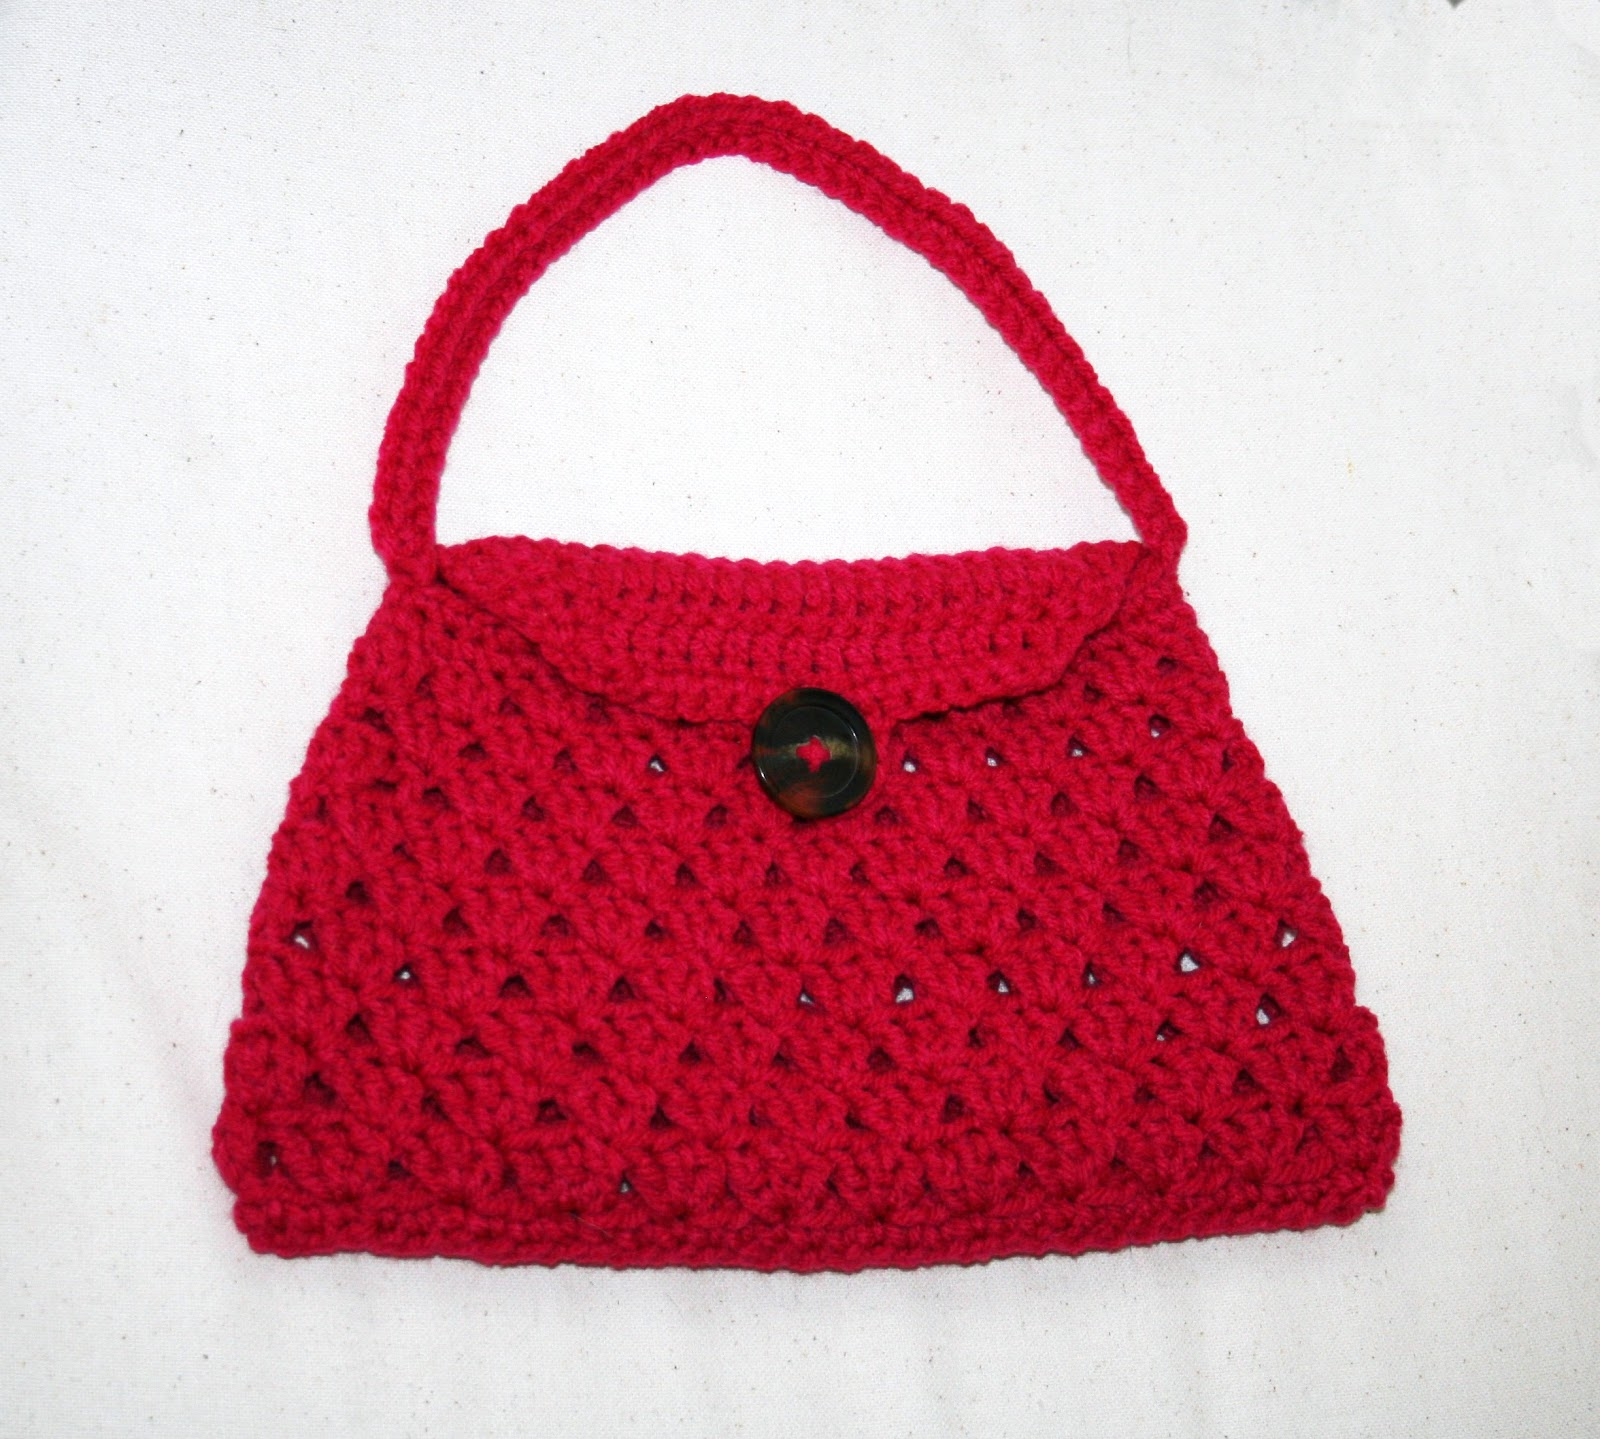 Tampa Bay Crochet: Free Crochet Pattern: Stylish Crochet Handbag